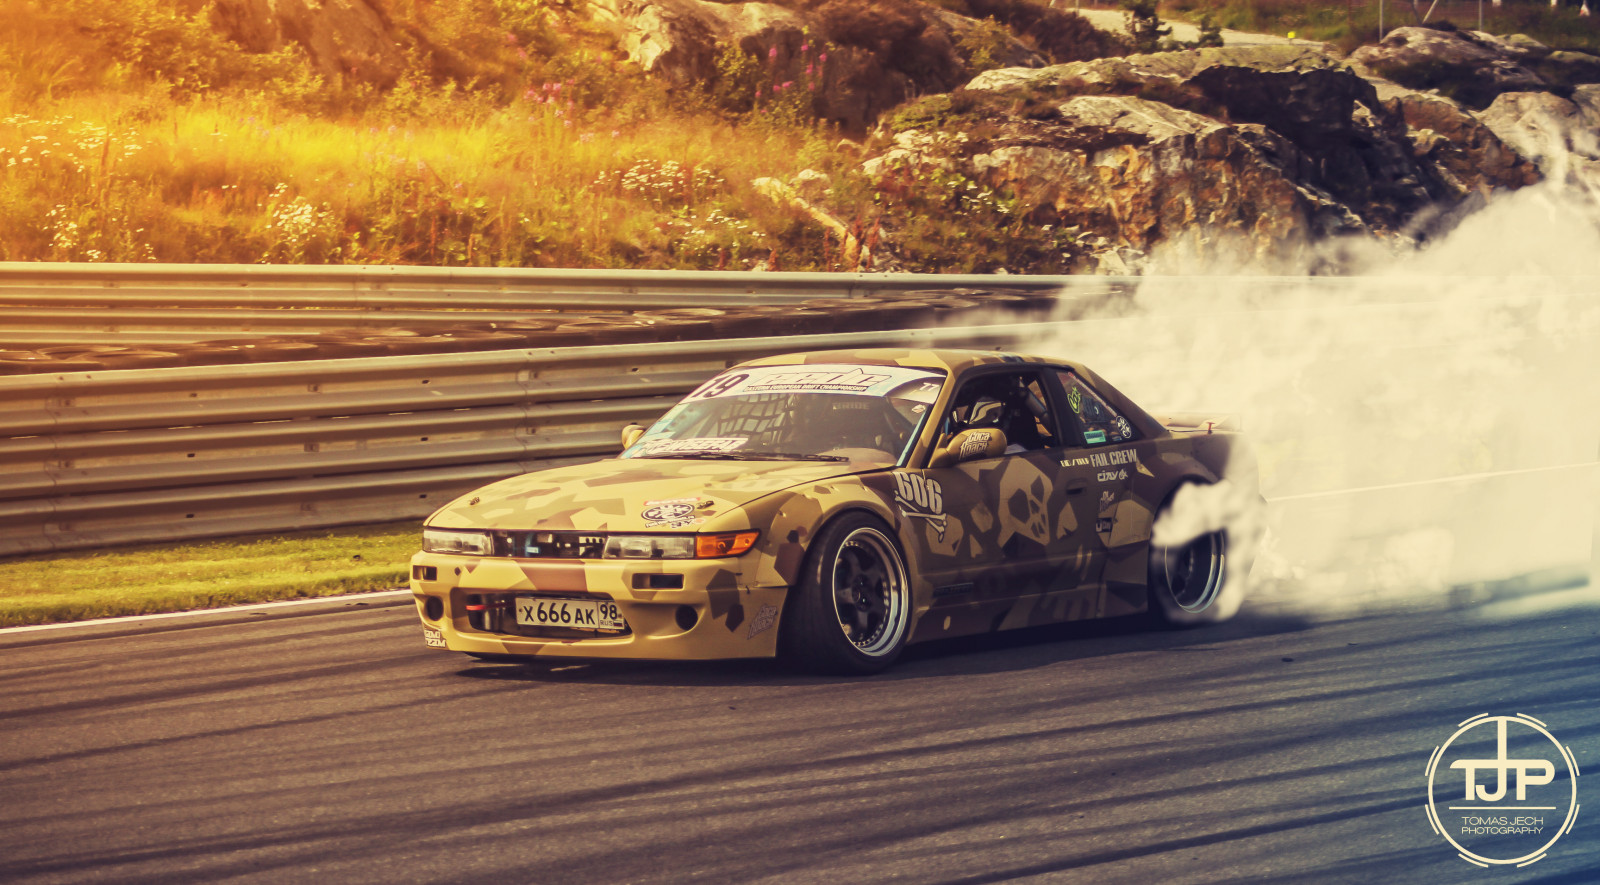 Awesome Race Car Wallpapers Wallpaper Japan Bmw Photography Smoke Norway Nissan